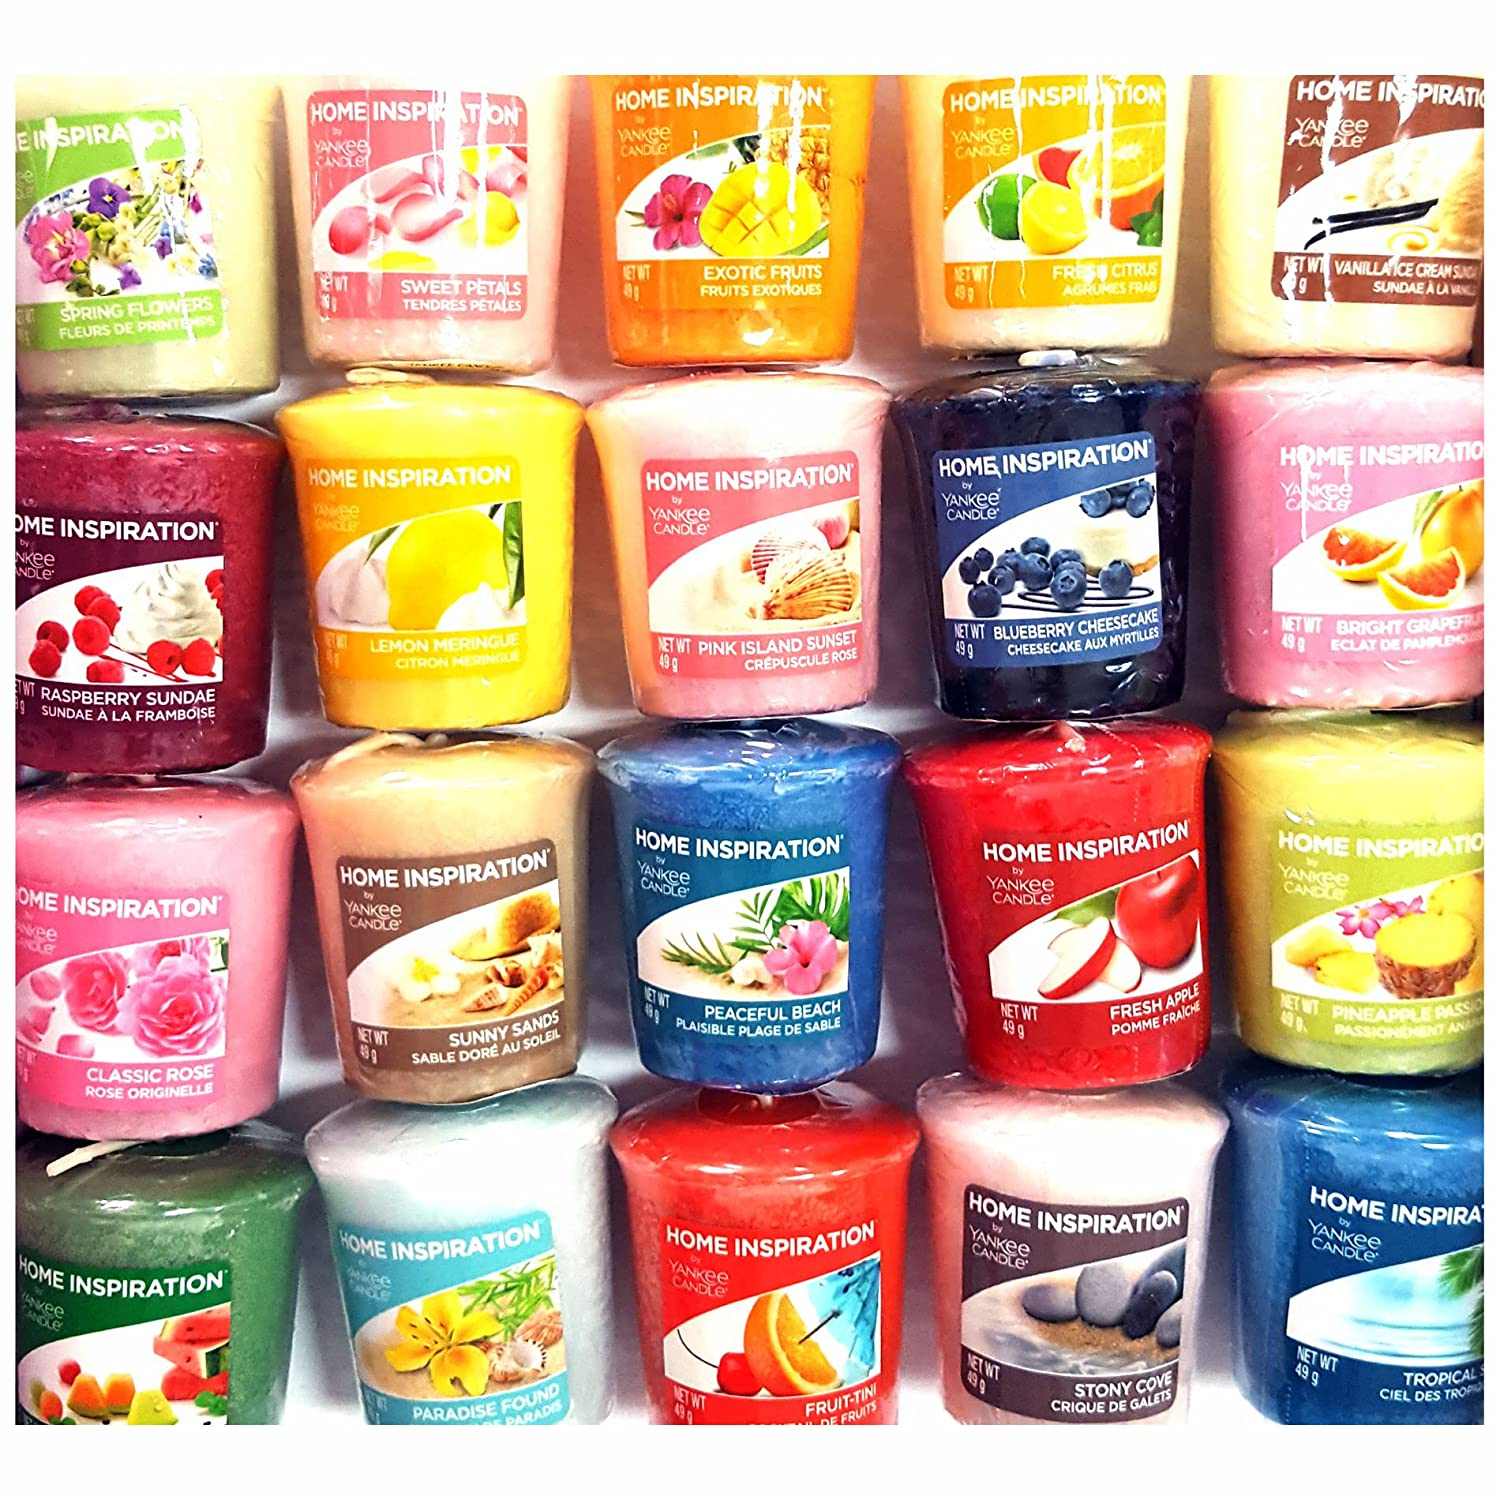 12 x Home Inspiration Official Yankee Candle Votive Sampler Candles Rare Assorted Fragrances My Planet